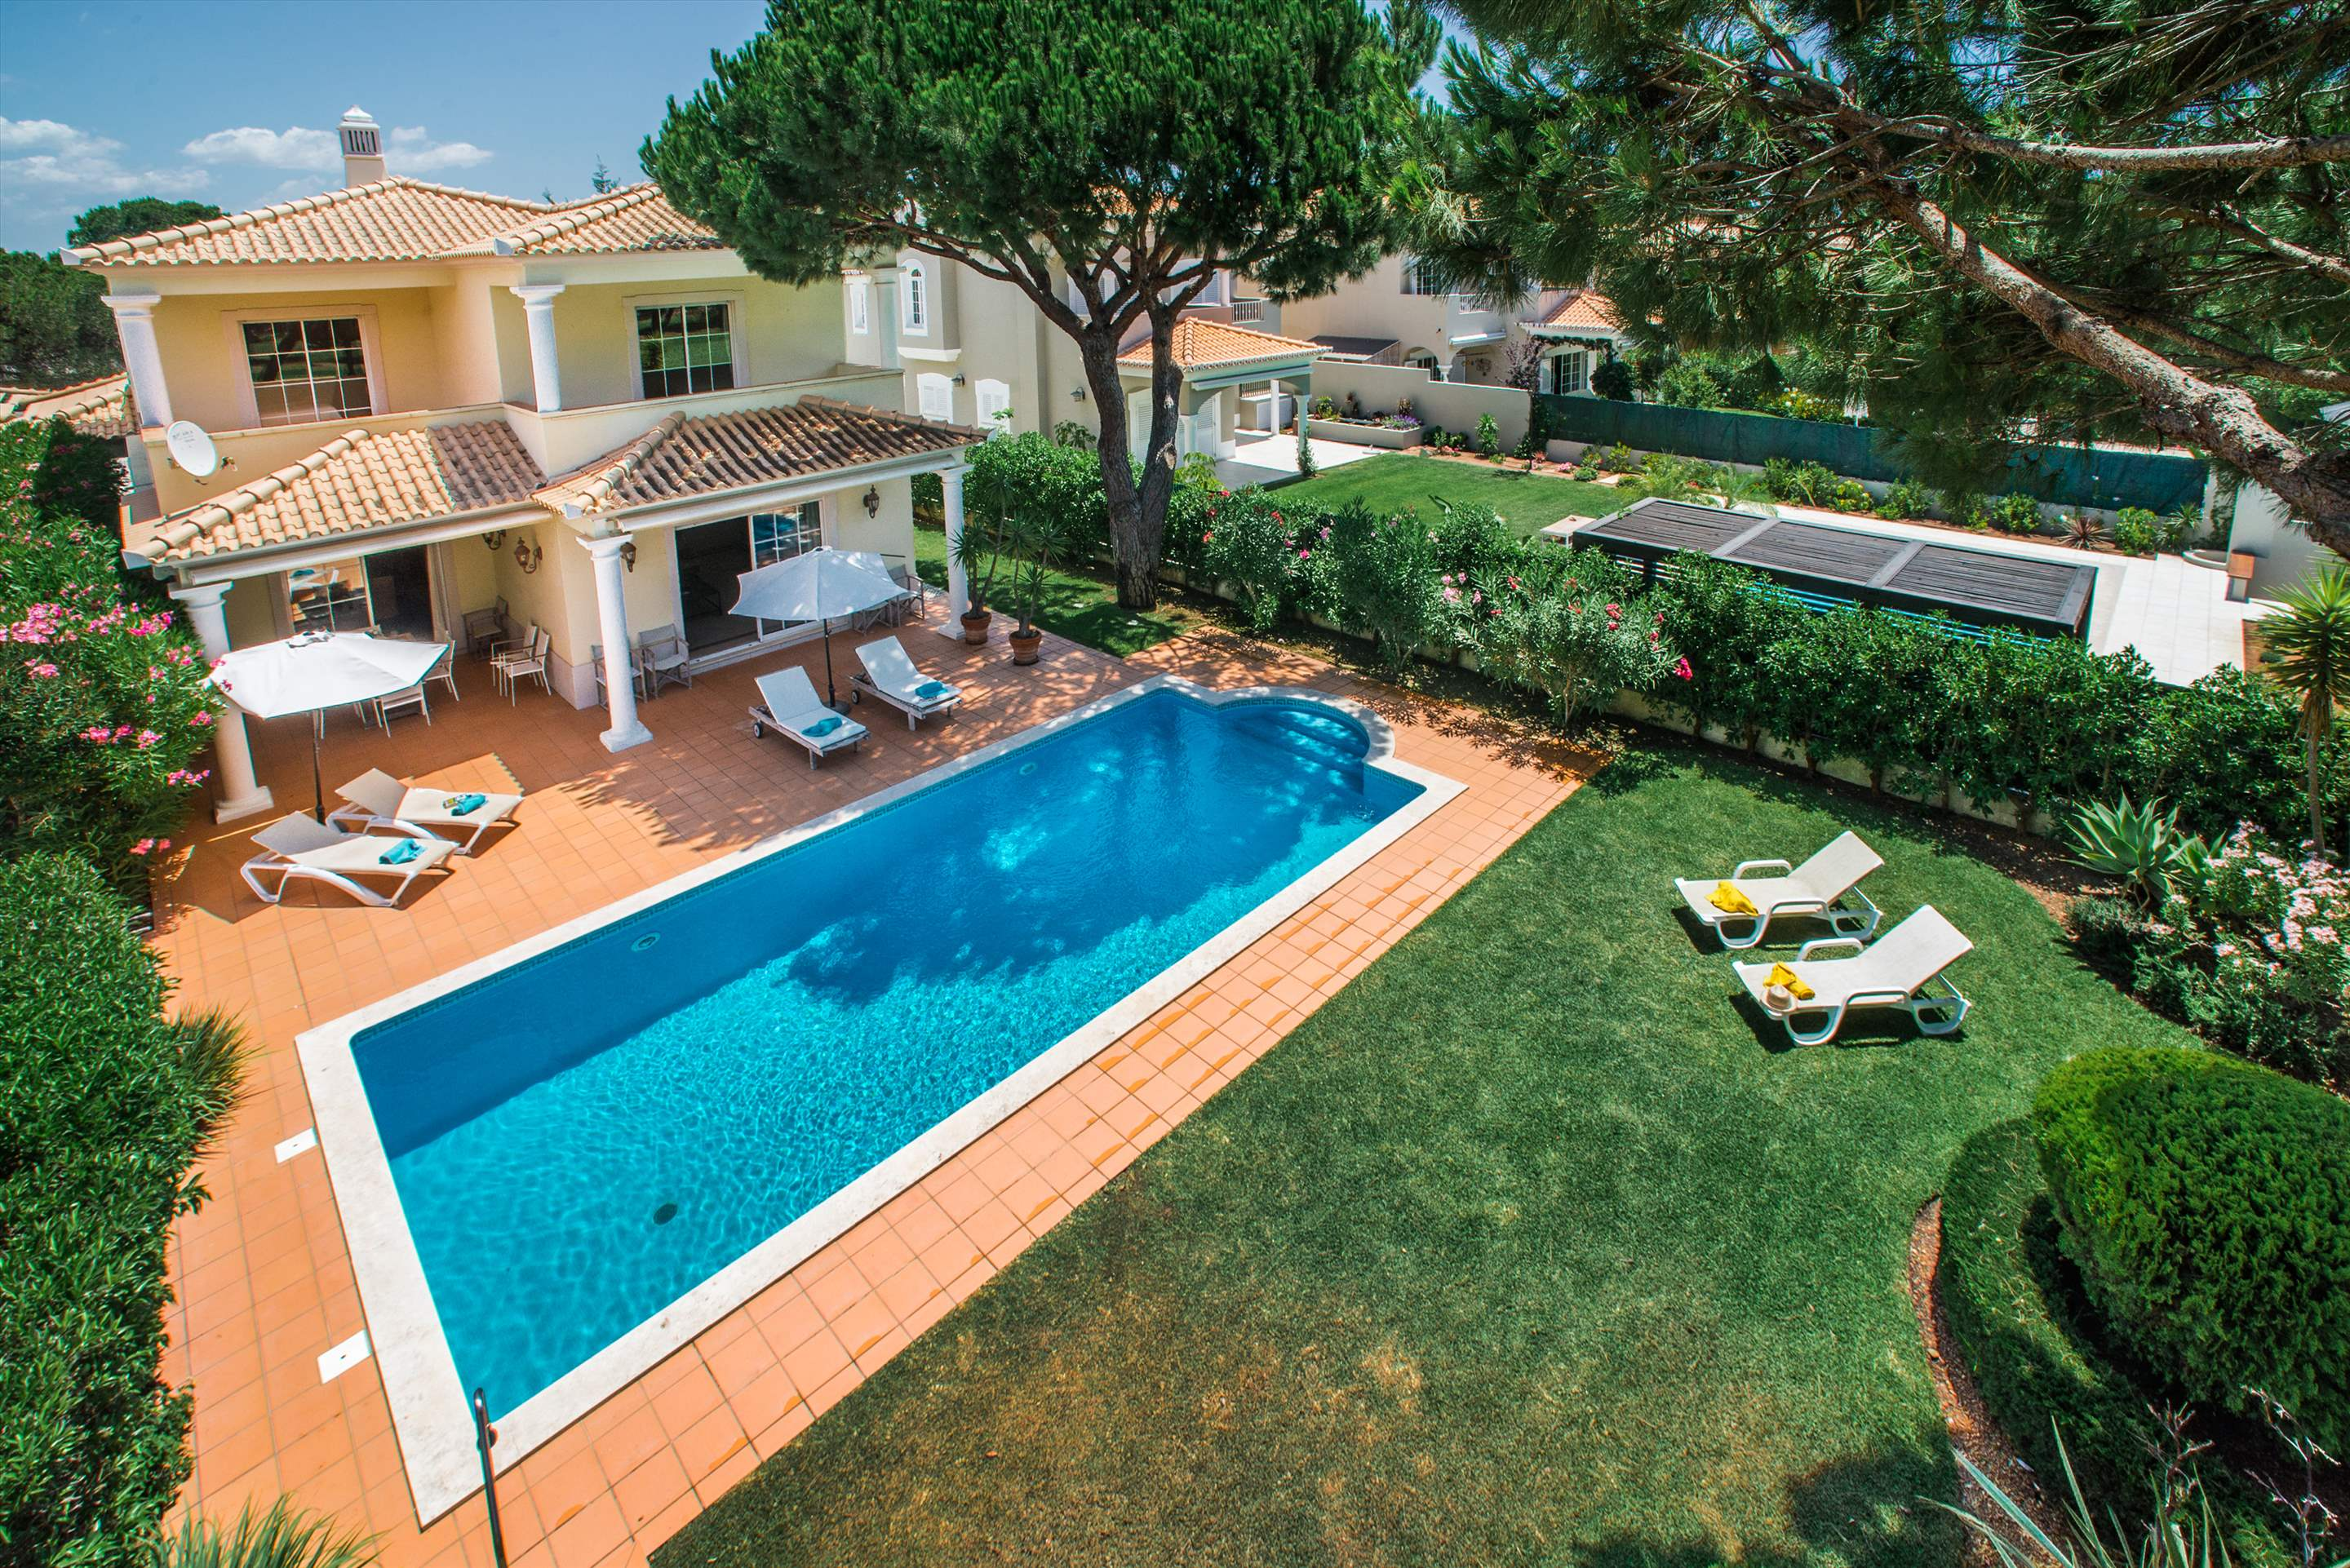 Vivenda Anita 1, 4 bedroom villa in Vilamoura Area, Algarve Photo #10